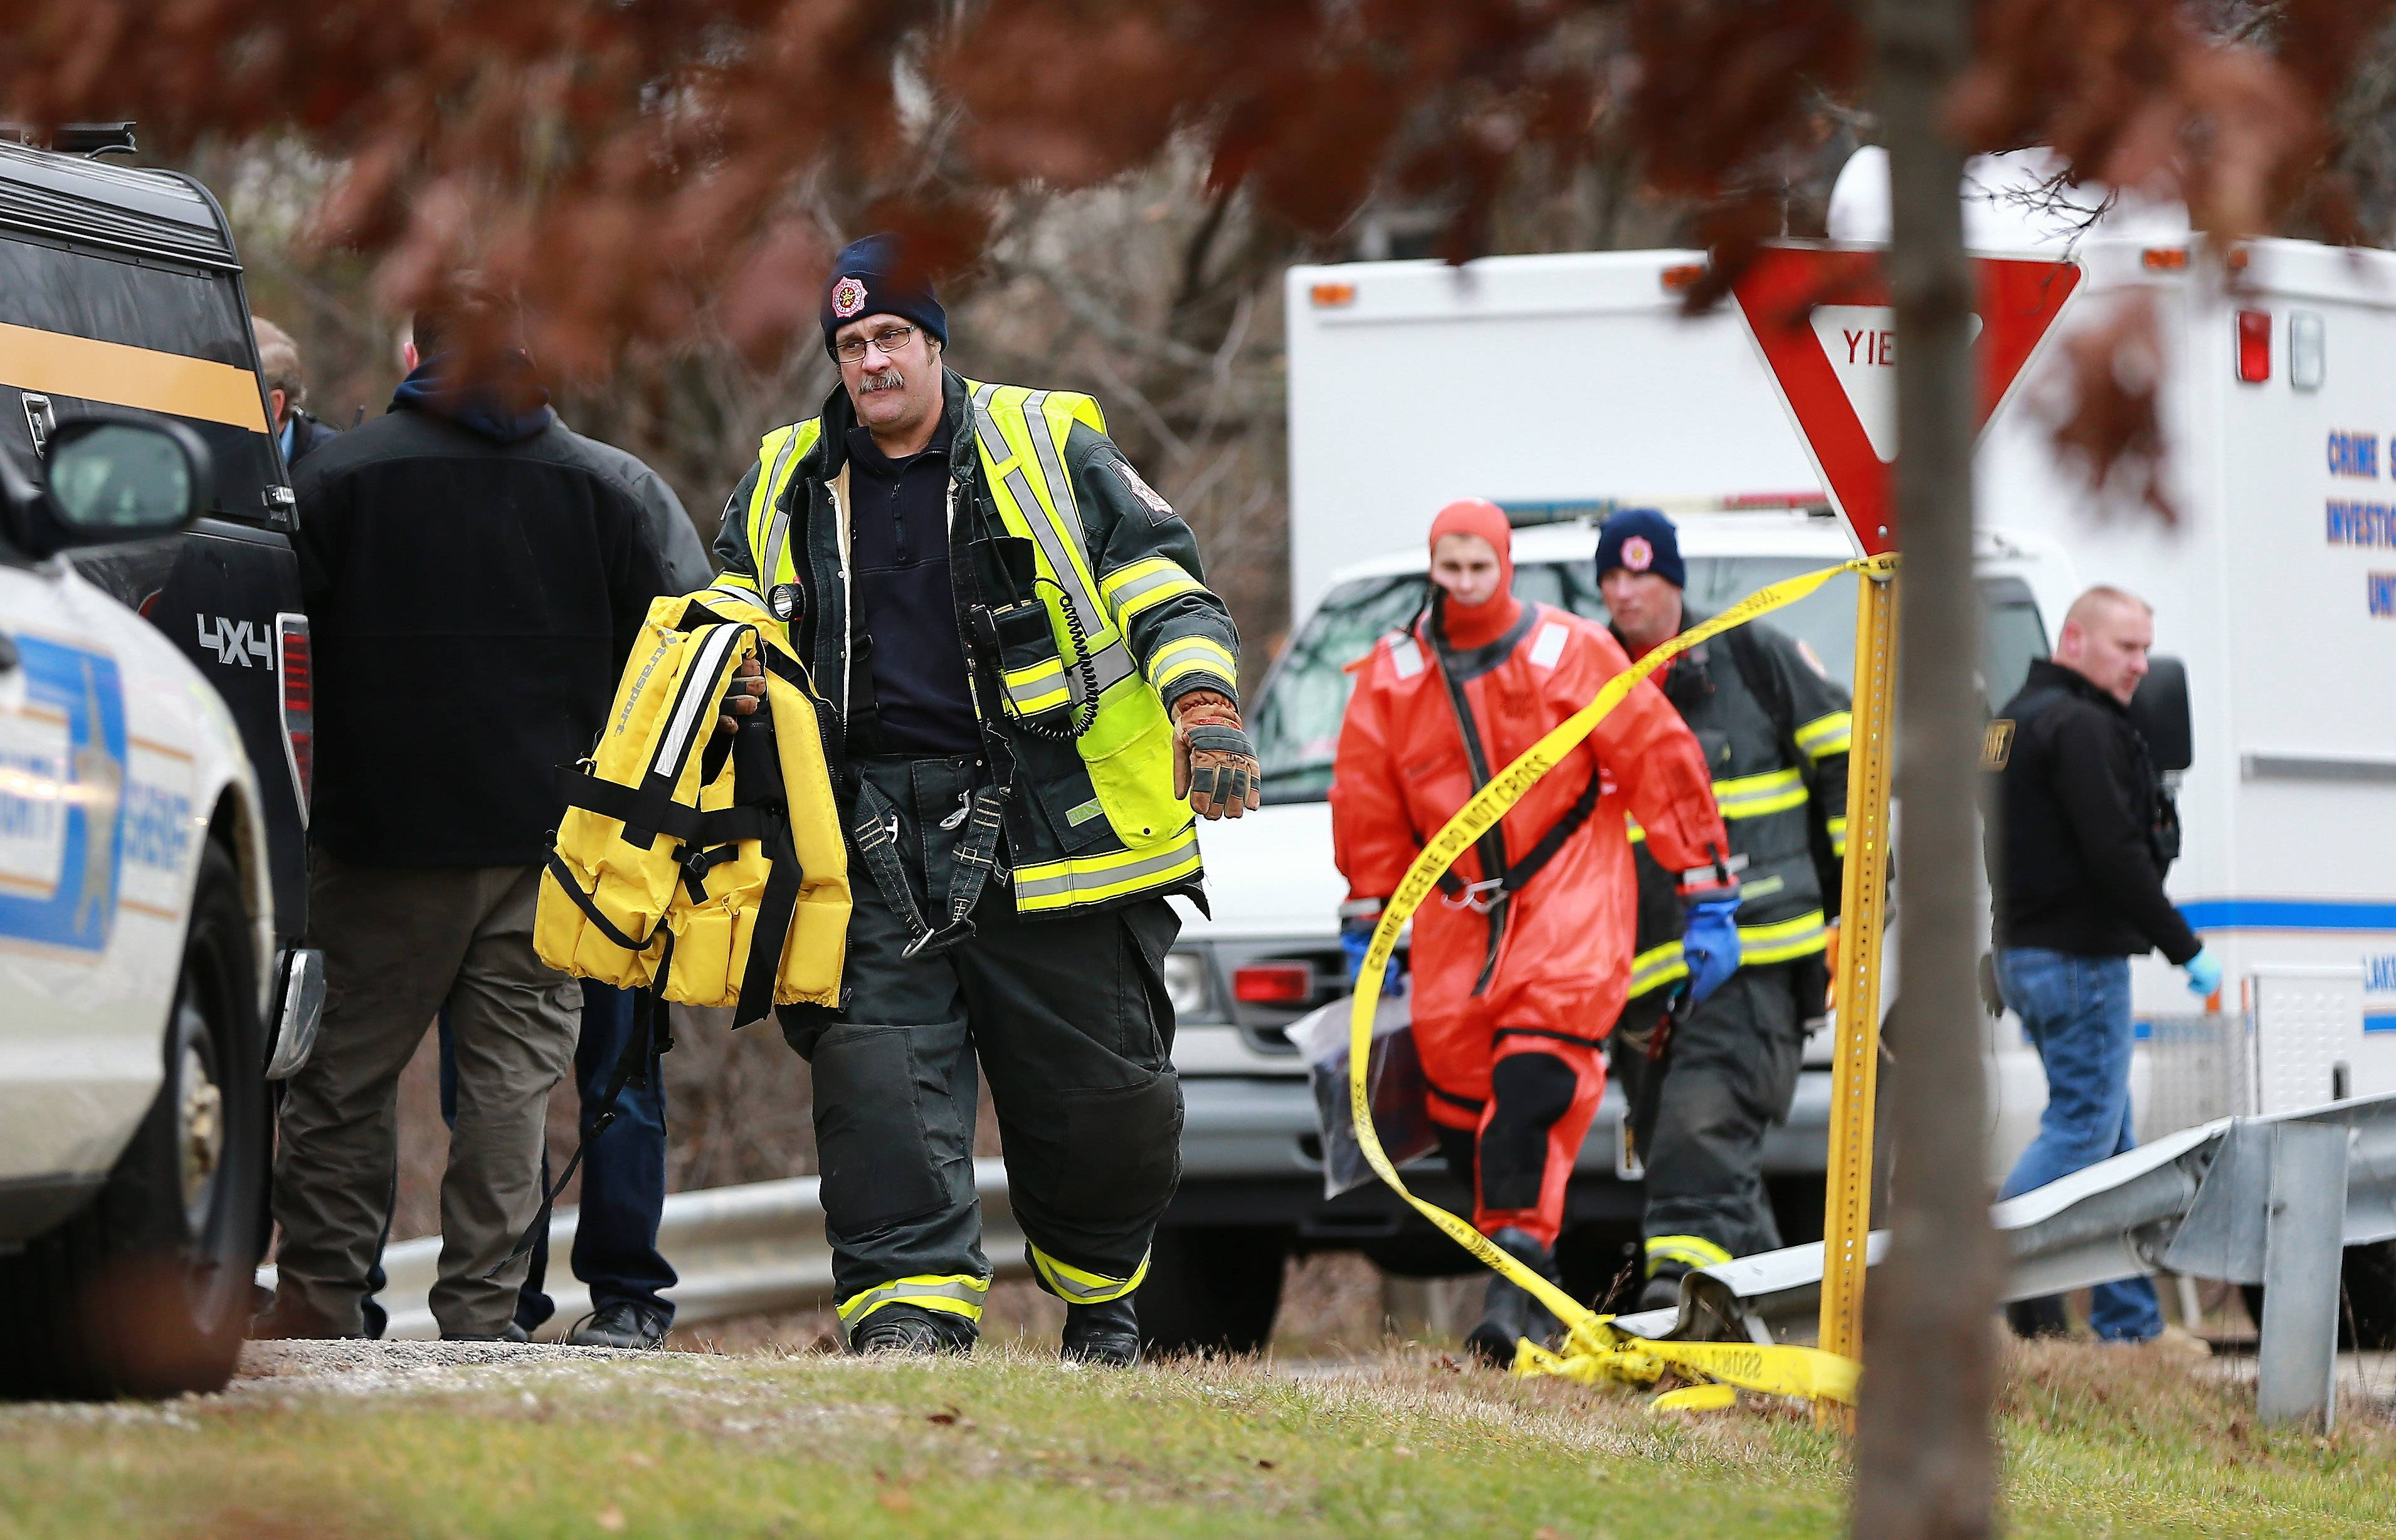 Crews from the Countryside Fire Protection District and Lake County Sheriff's police at Sylvan Lake near Mundelein, where a woman's body was discovered Friday.